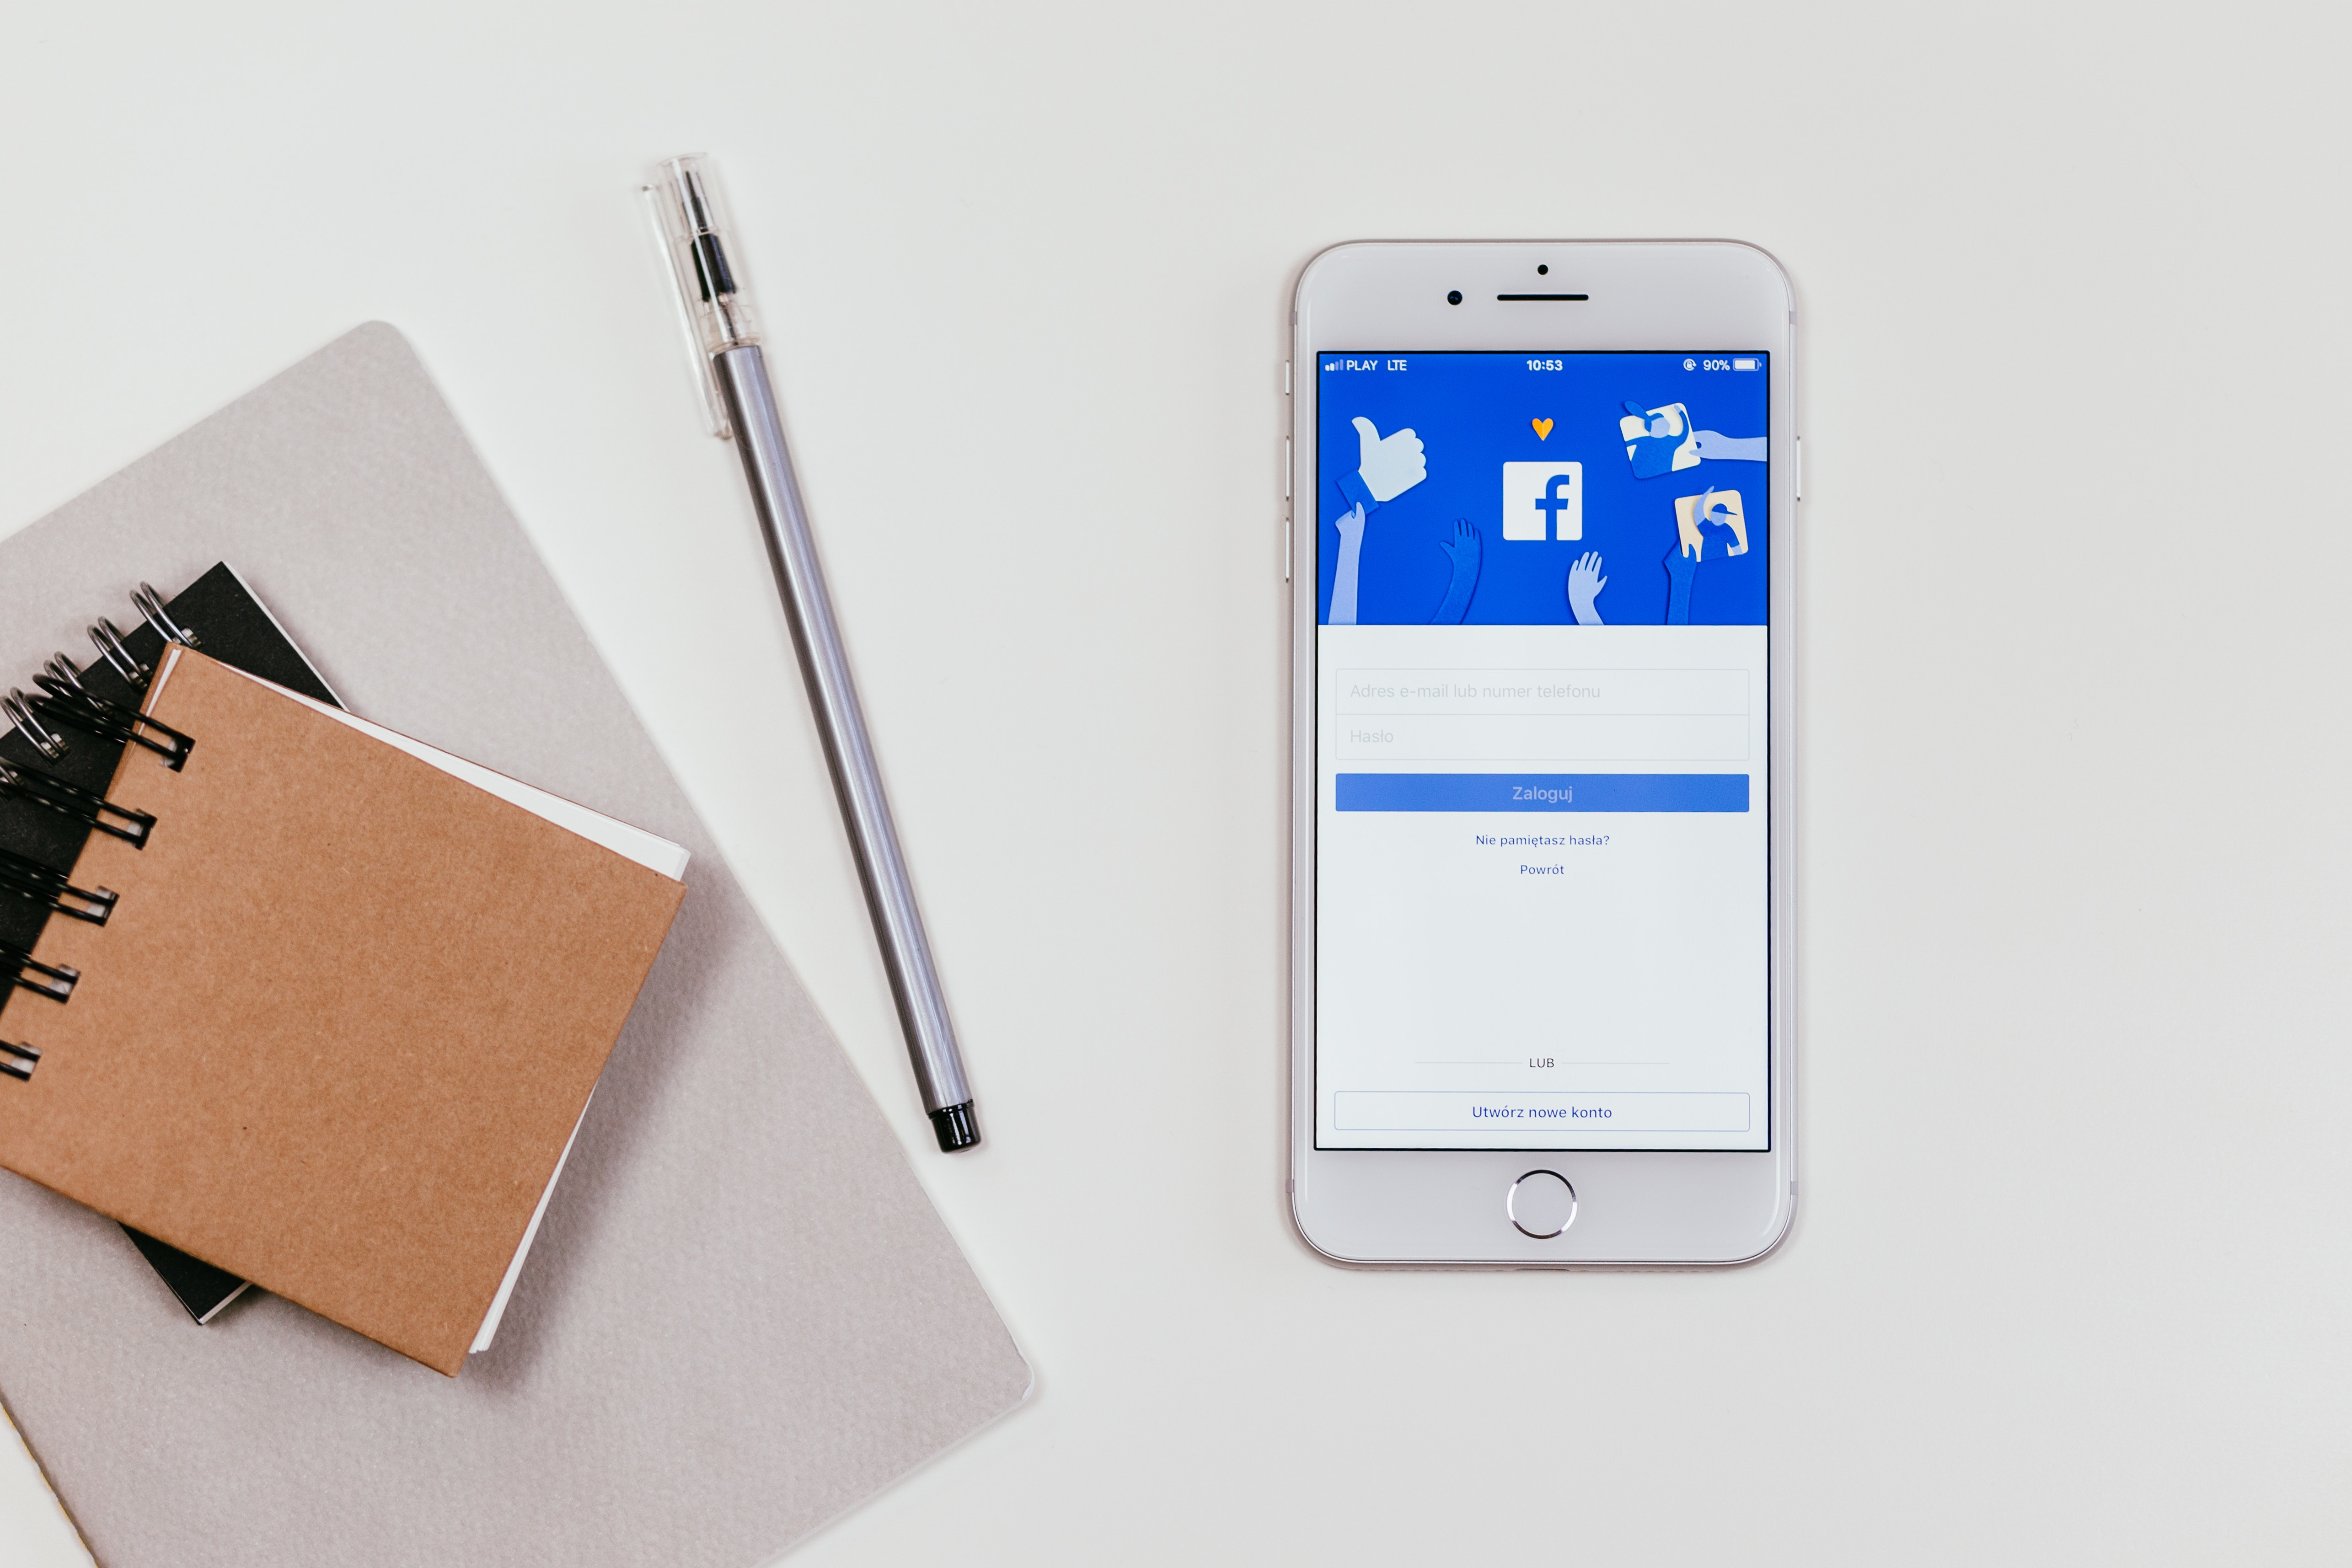 Facebook business page advice - notepad and Facebook on mobile